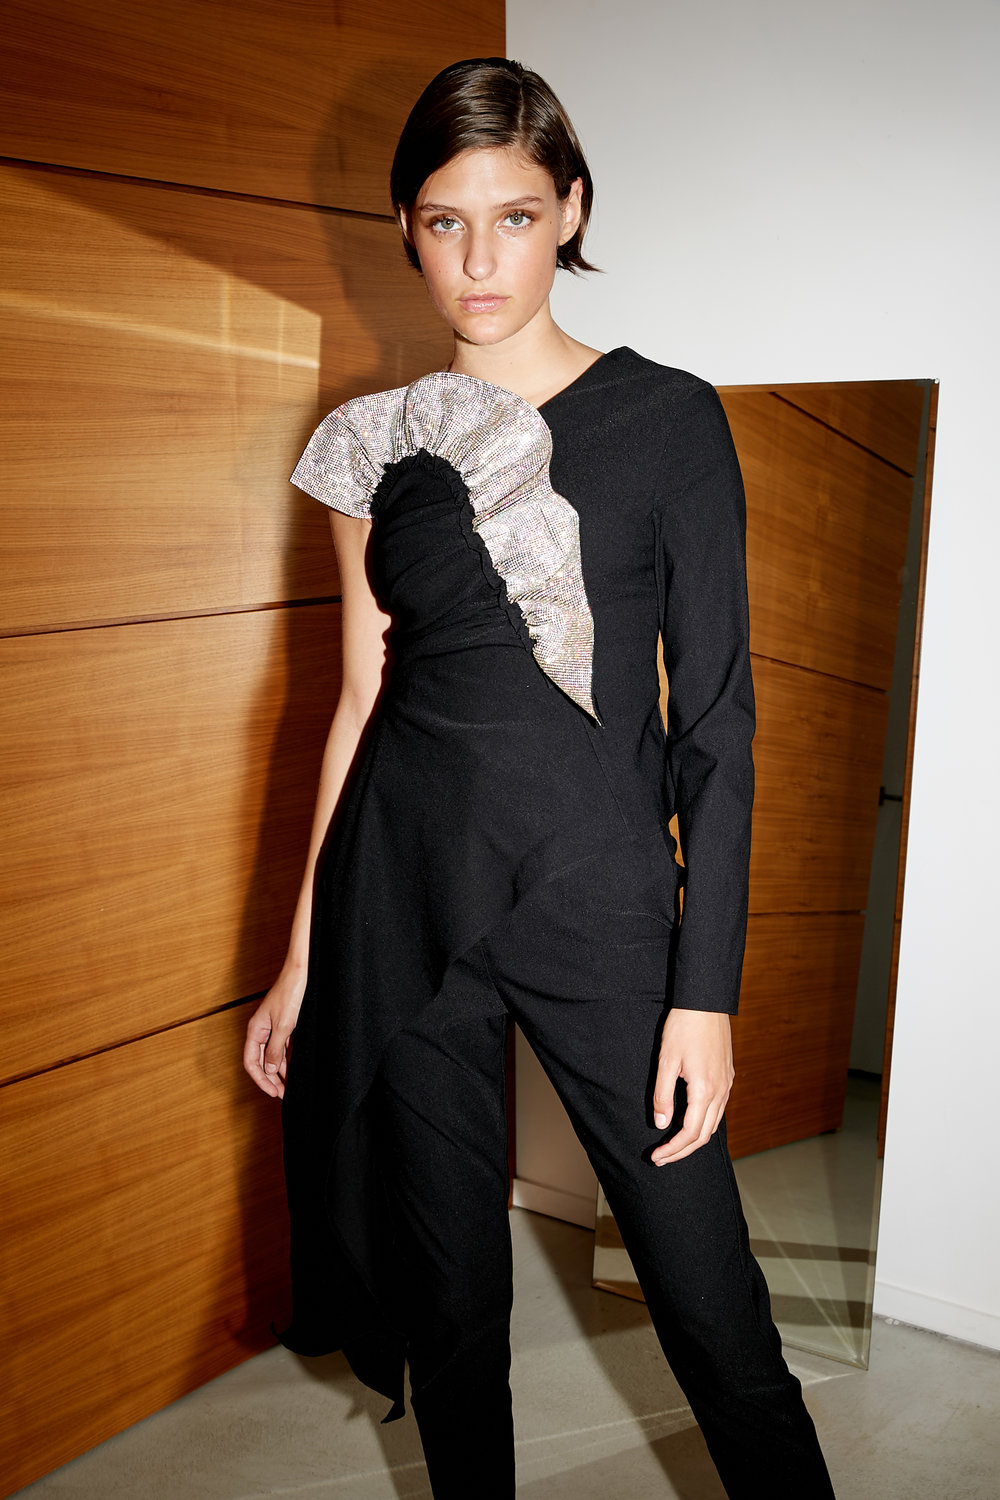 Model stands in matte black one shoulder top with ruffle crystal detail and tailored black pants